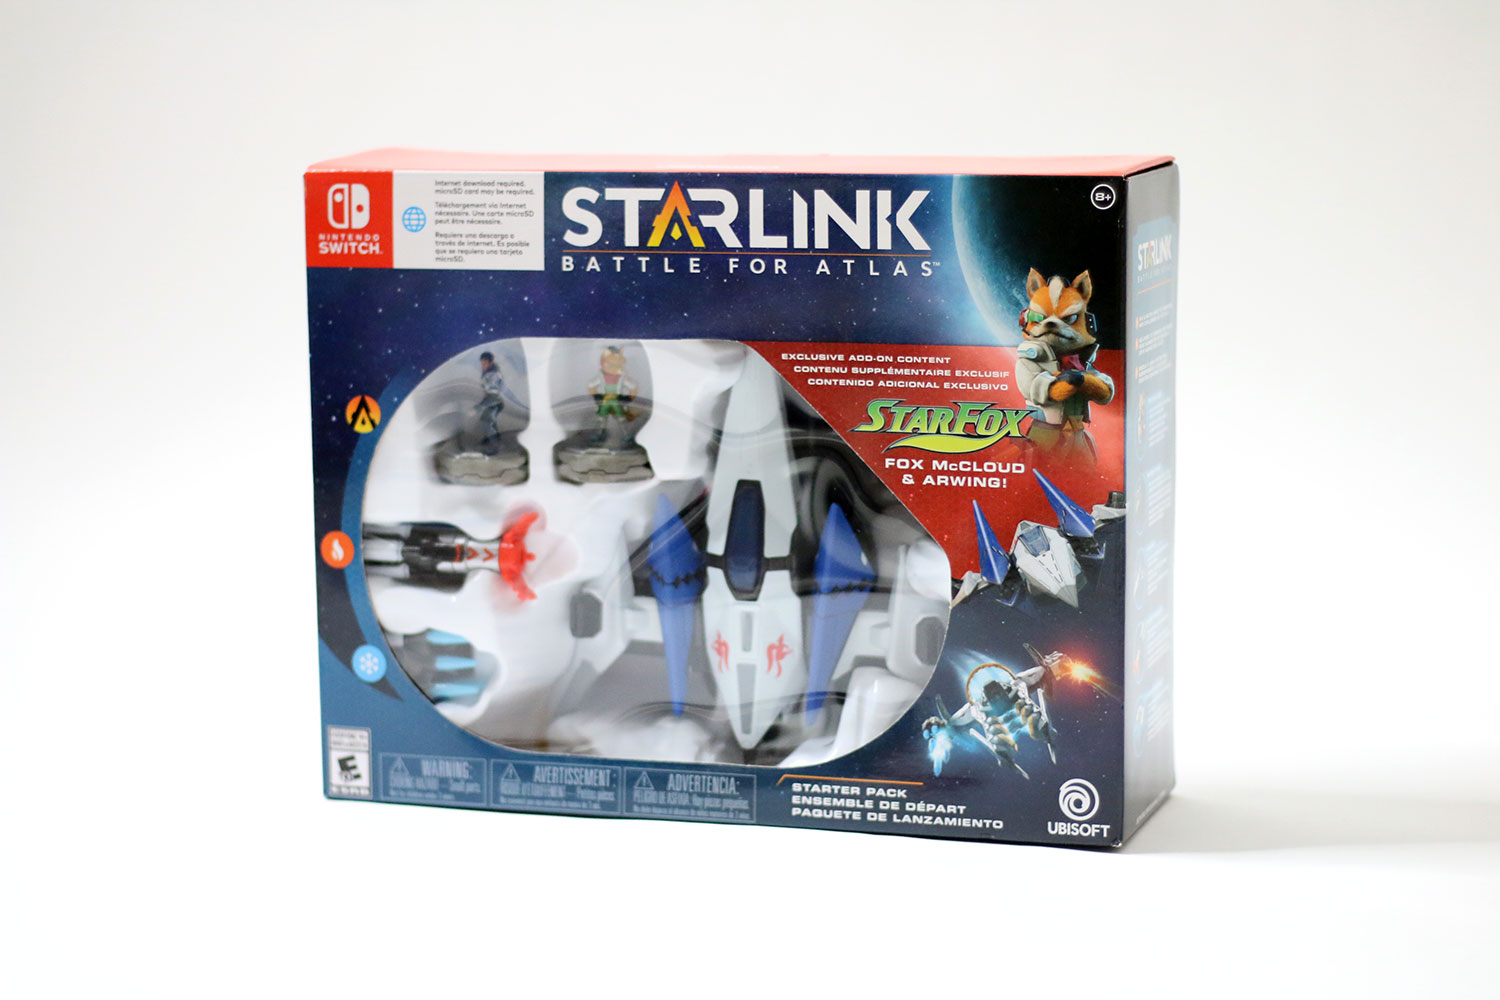 Starlink: Battle for Atlas Starter Pack Featuring Star Fox